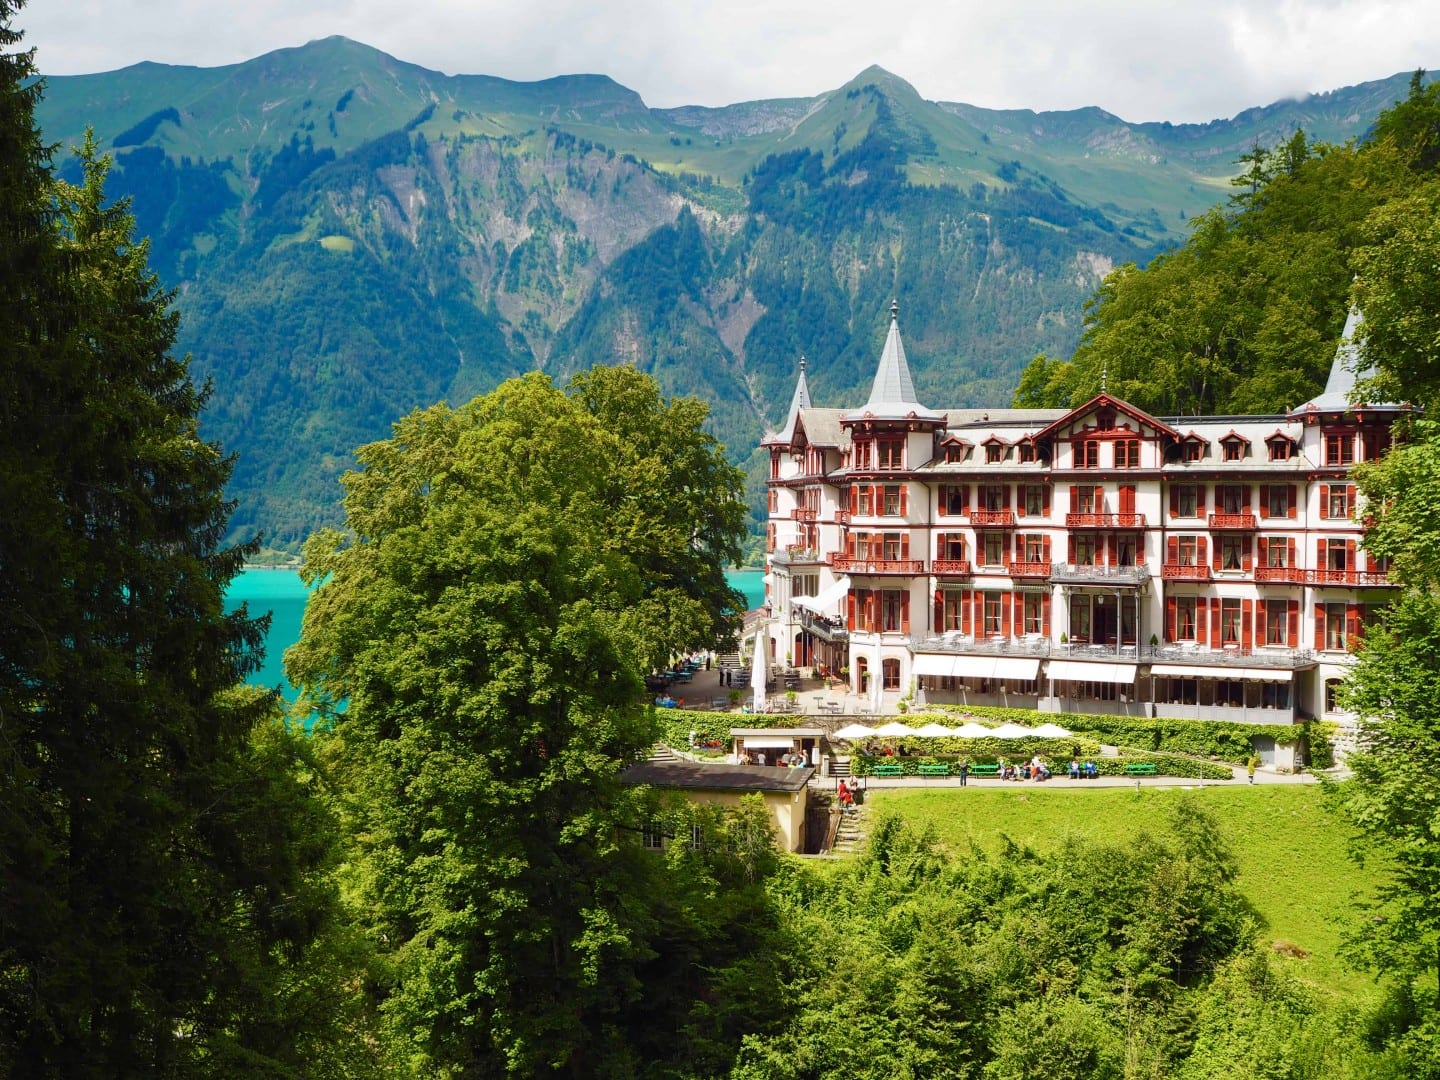 The Grand Hotel Giessbach Switzerland